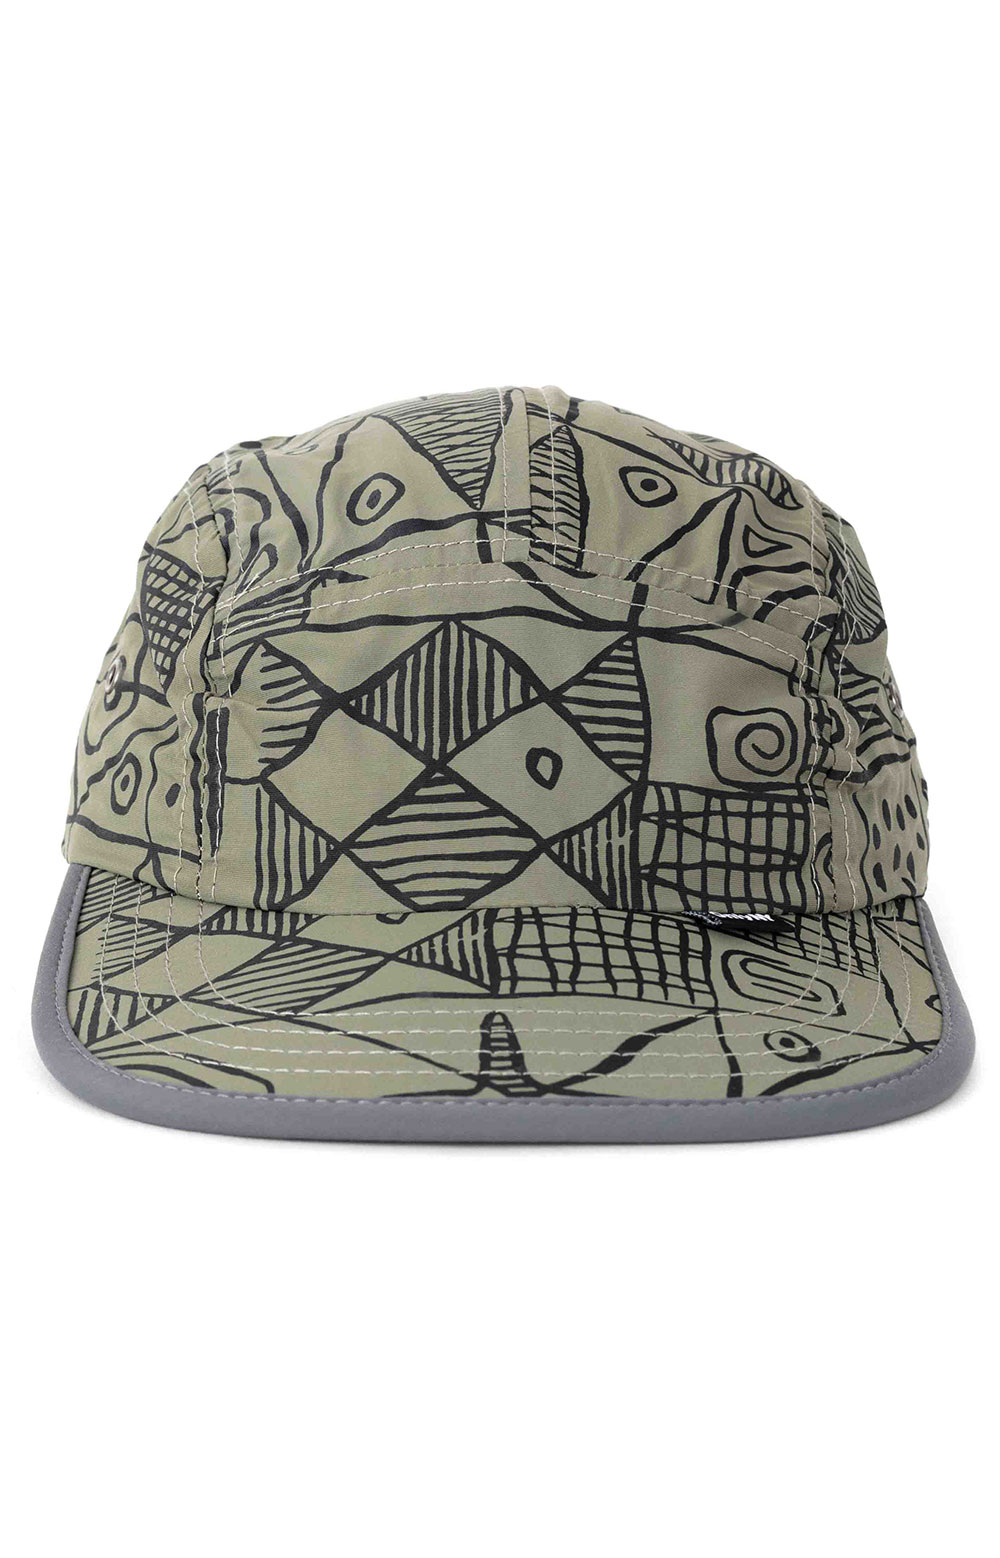 Marco Soft Bill 5 Panel Hat - Olive  2